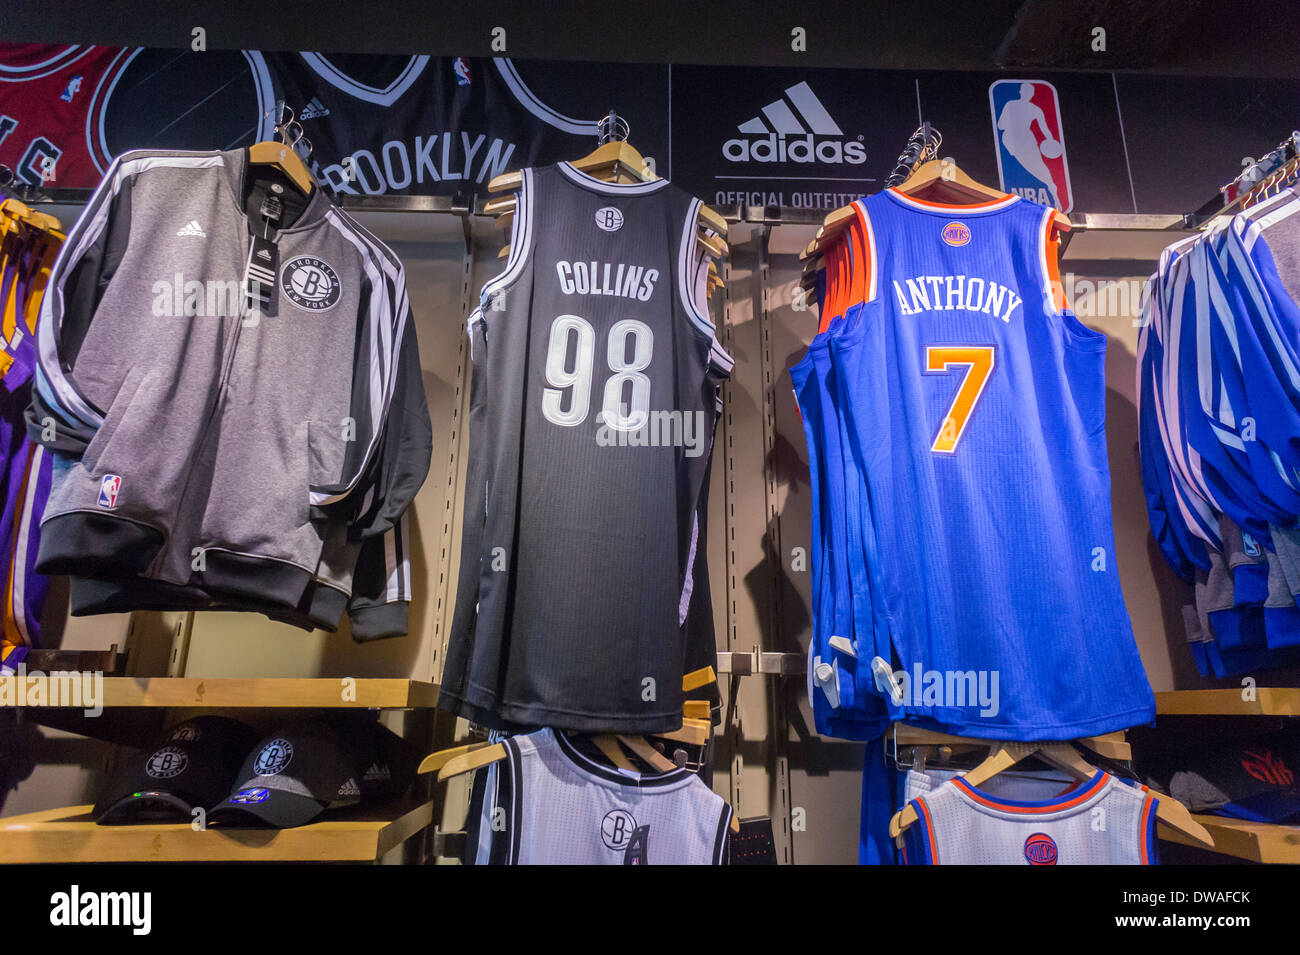 d4fc09dd6da Jason Collins' number 98 Brooklyn Nets basketball jersey is seen amongst  other players' uniforms at the NBA store in New York